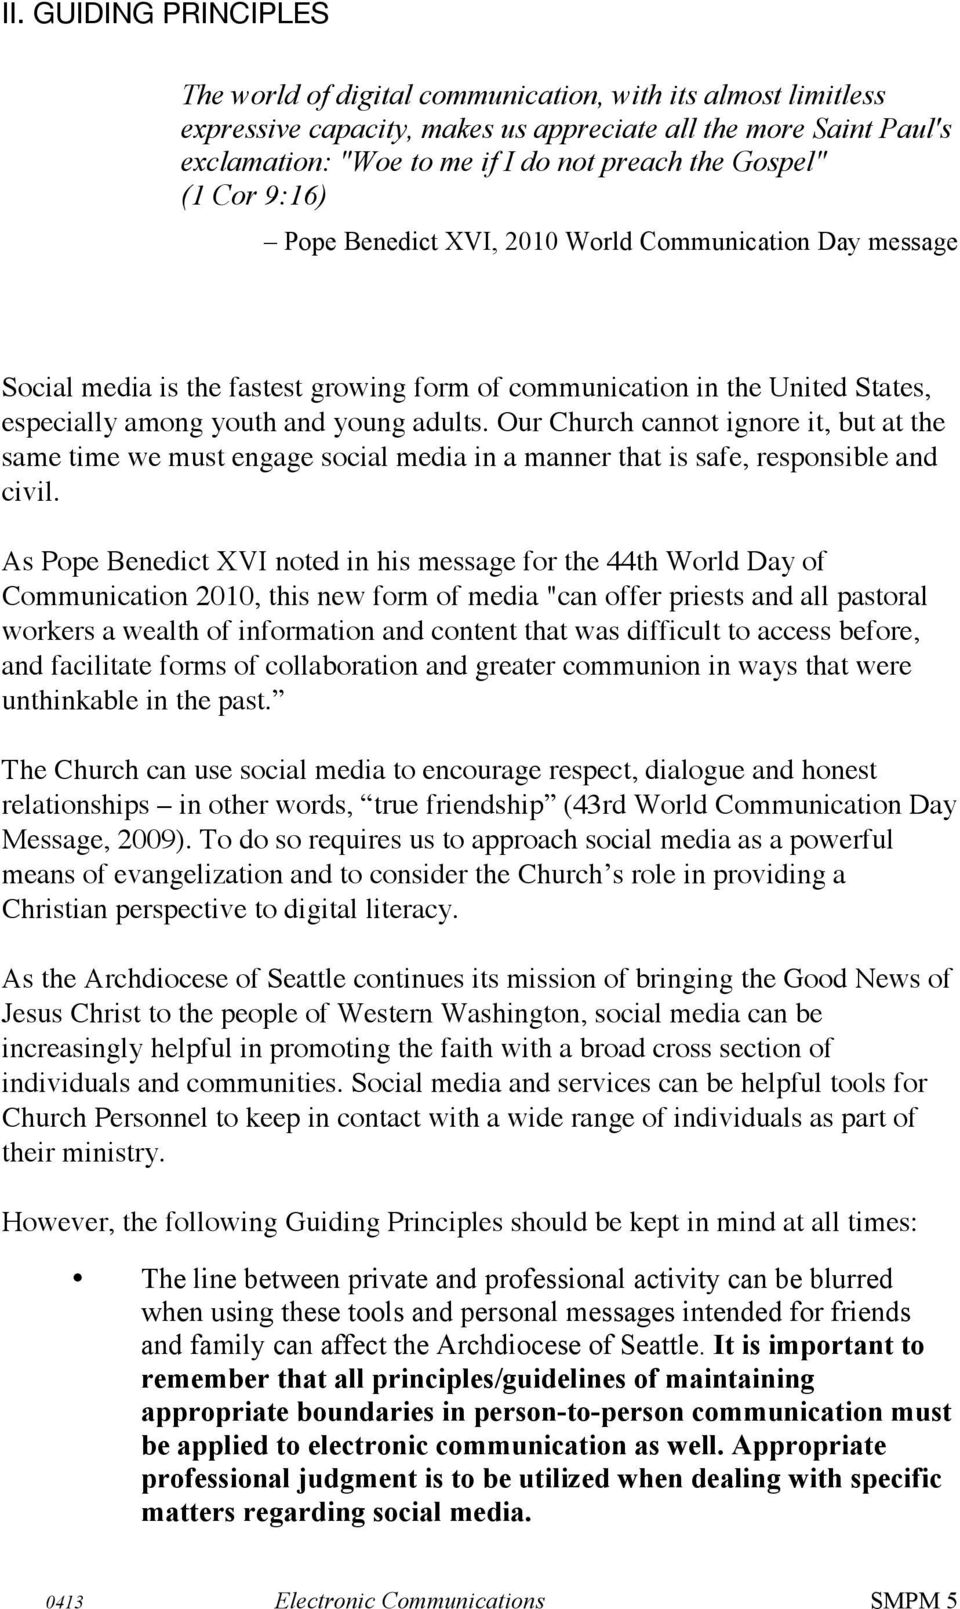 Our Church cannot ignore it, but at the same time we must engage social media in a manner that is safe, responsible and civil.